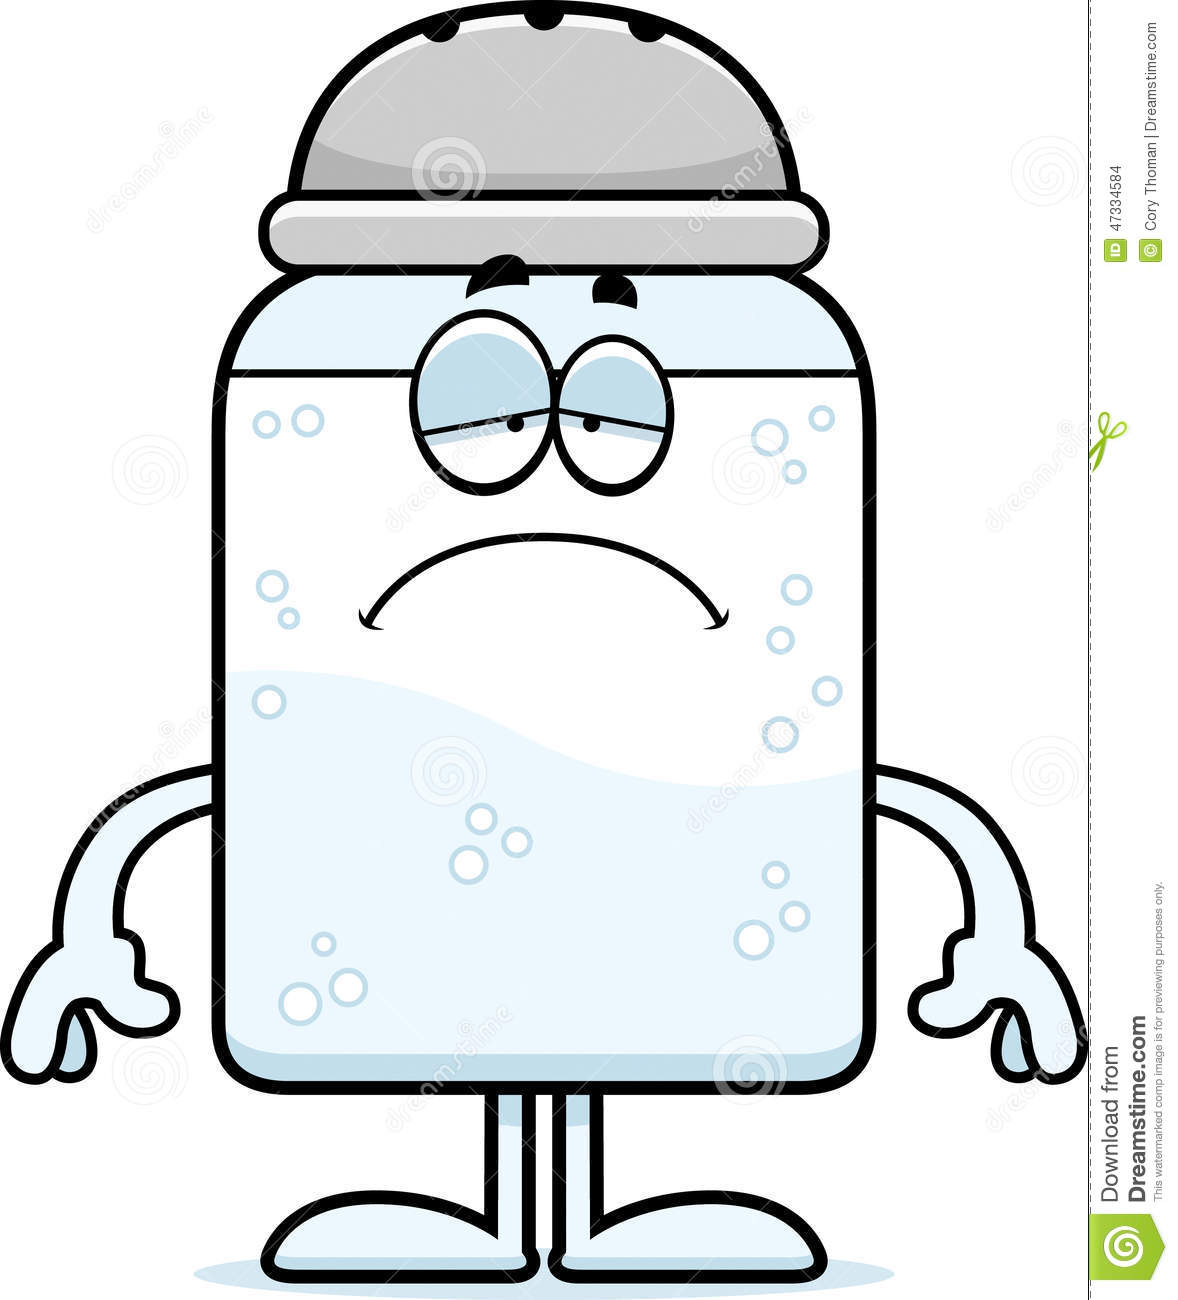 cartoon illustration of a salt shaker looking sad.